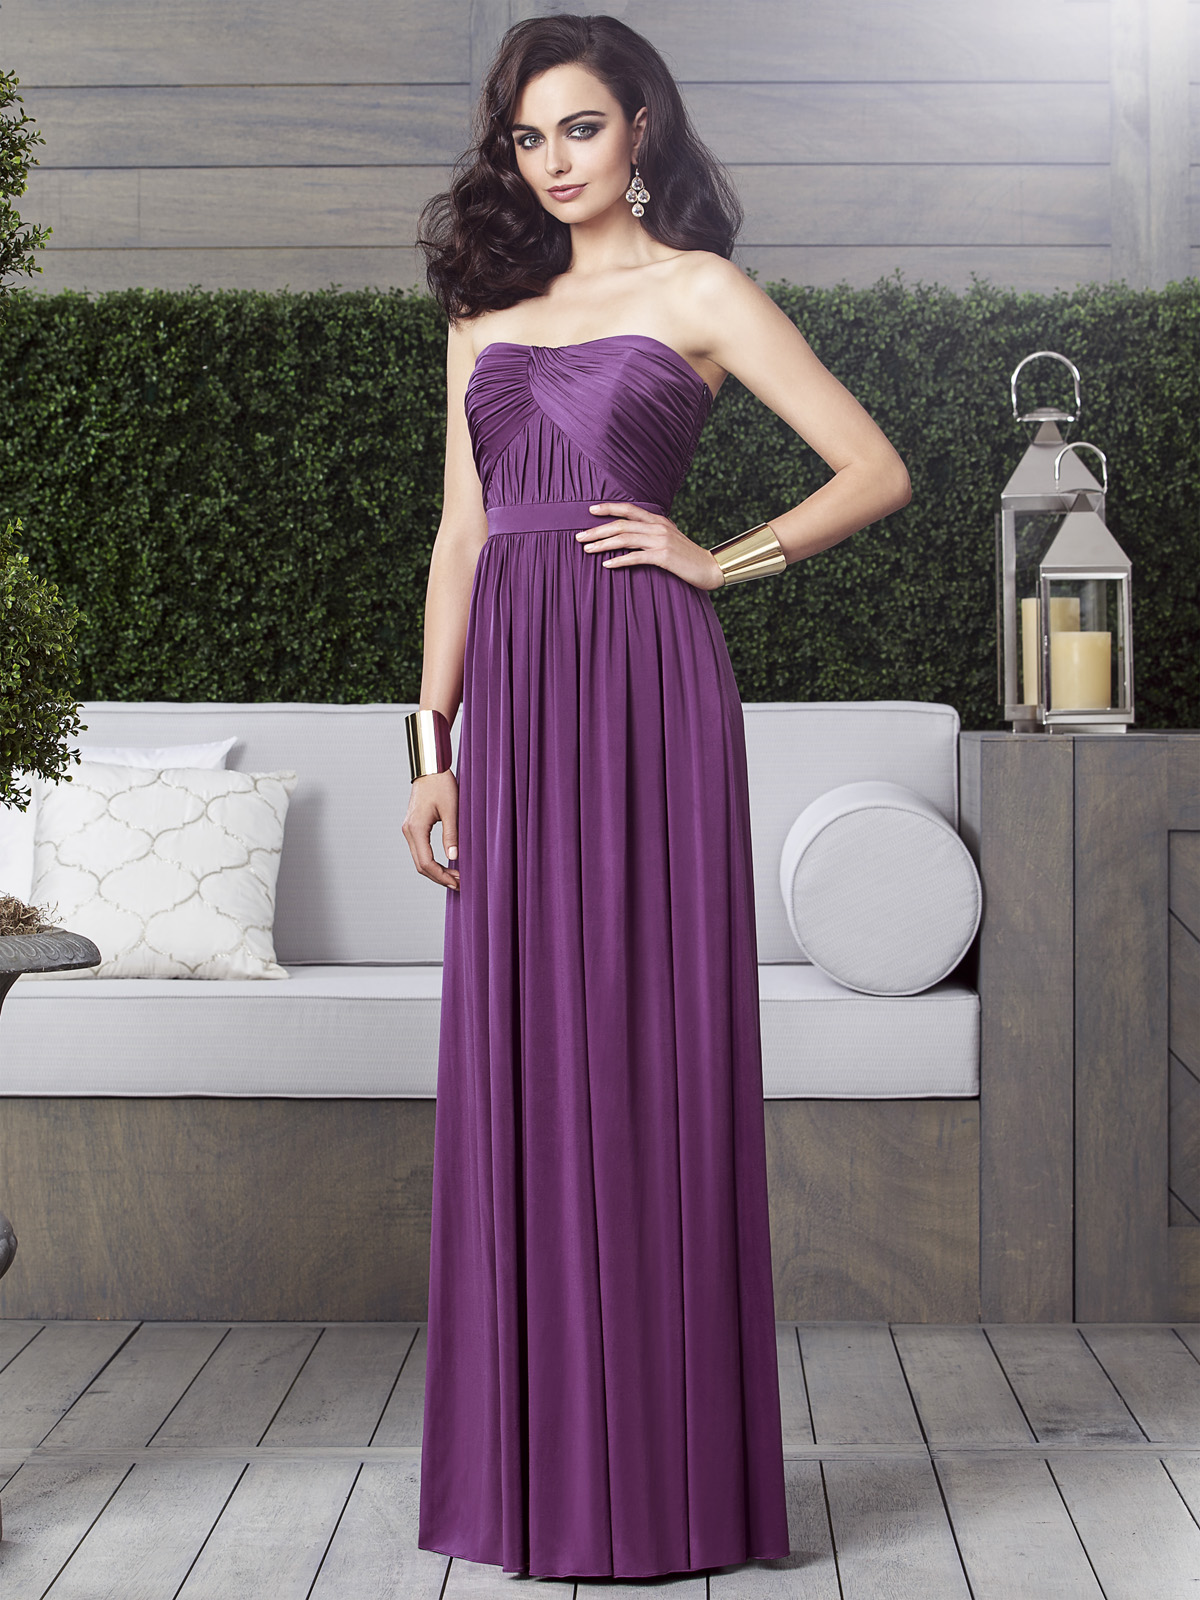 Dessy bridesmaid dress 2914 dimitradesigns strapless ruched bridesmaid dress dessy 2914 ombrellifo Gallery